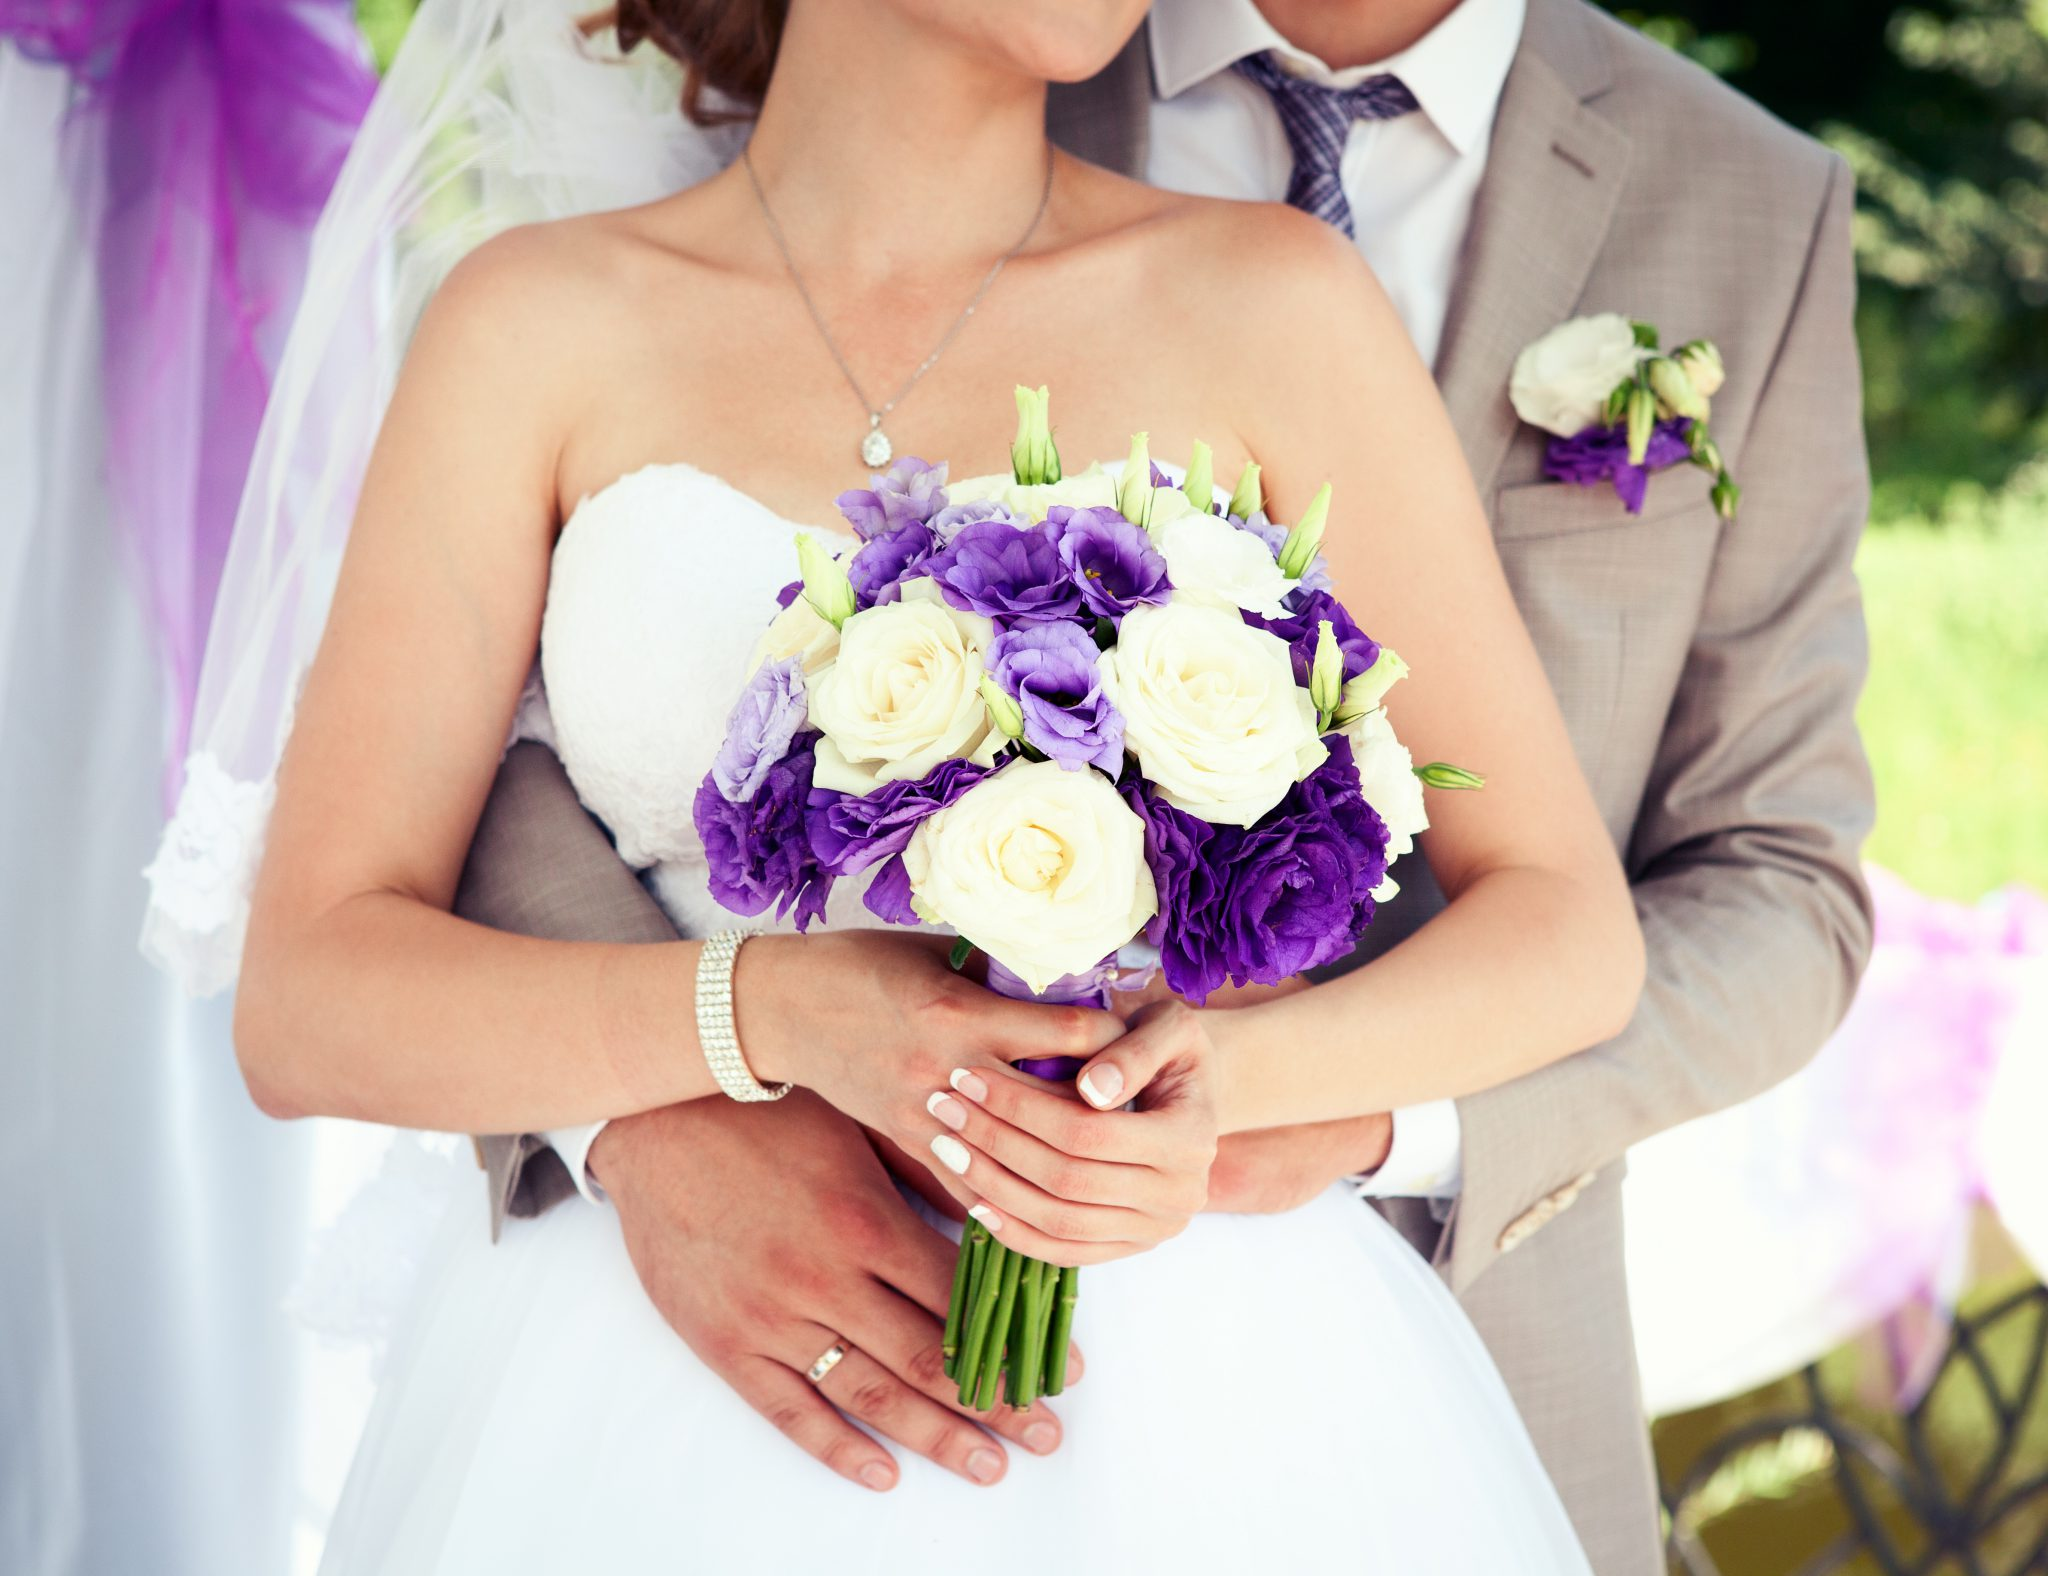 Happy bride and groom on their wedding. Wedding couple bride and groom holding hands.  Wedding bouquet closeup.